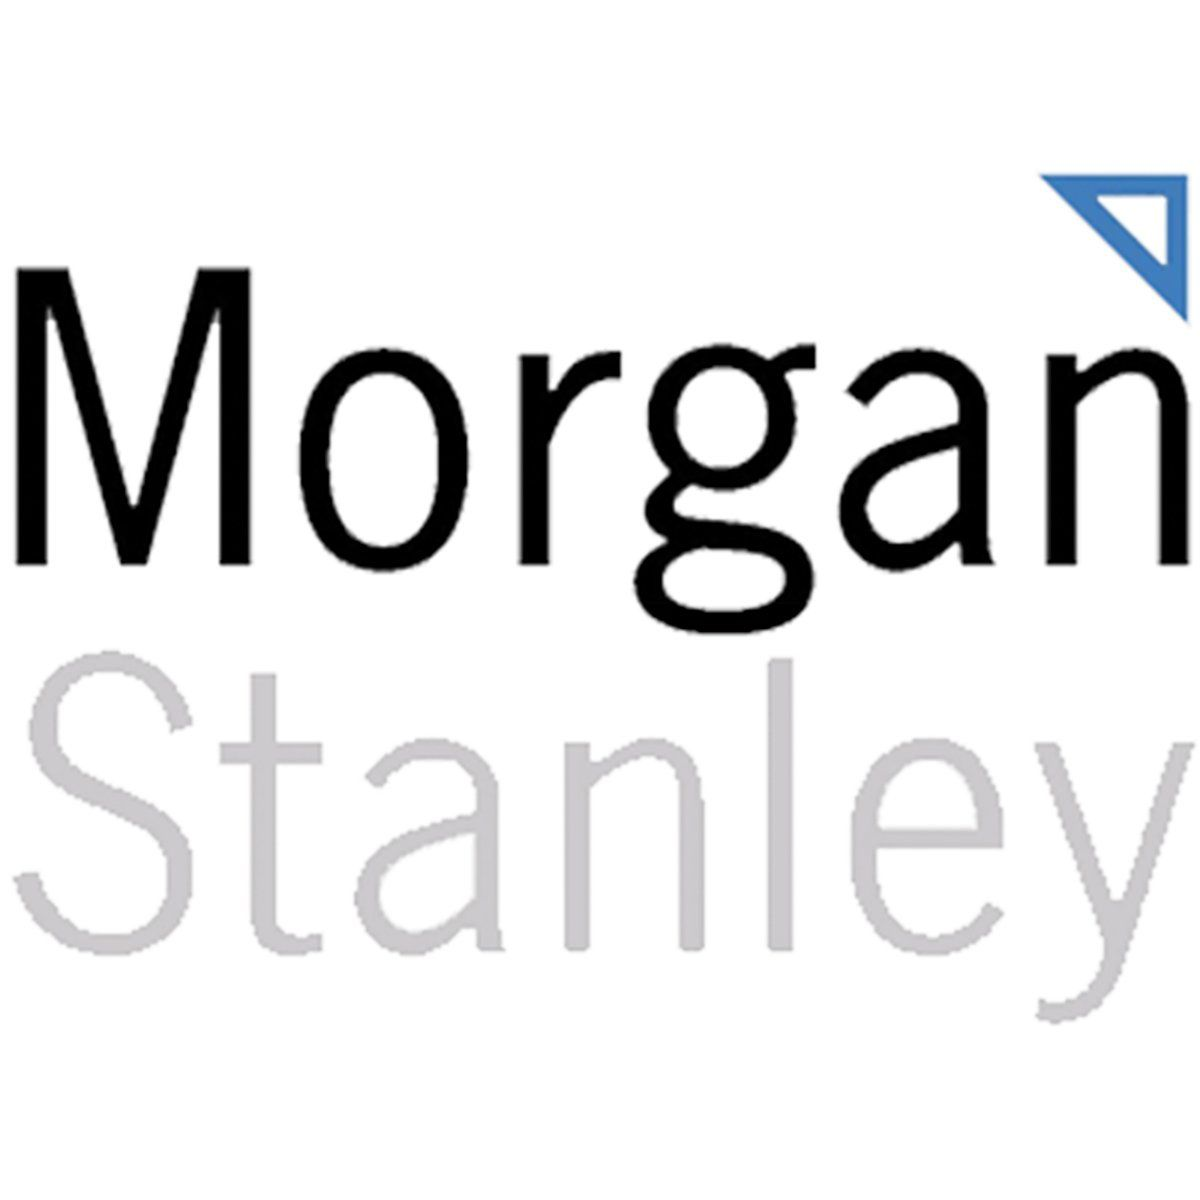 Morgan Stanley Logo - You Like Your Logo, but Do Your Consumers? | Agency News - Ad Age